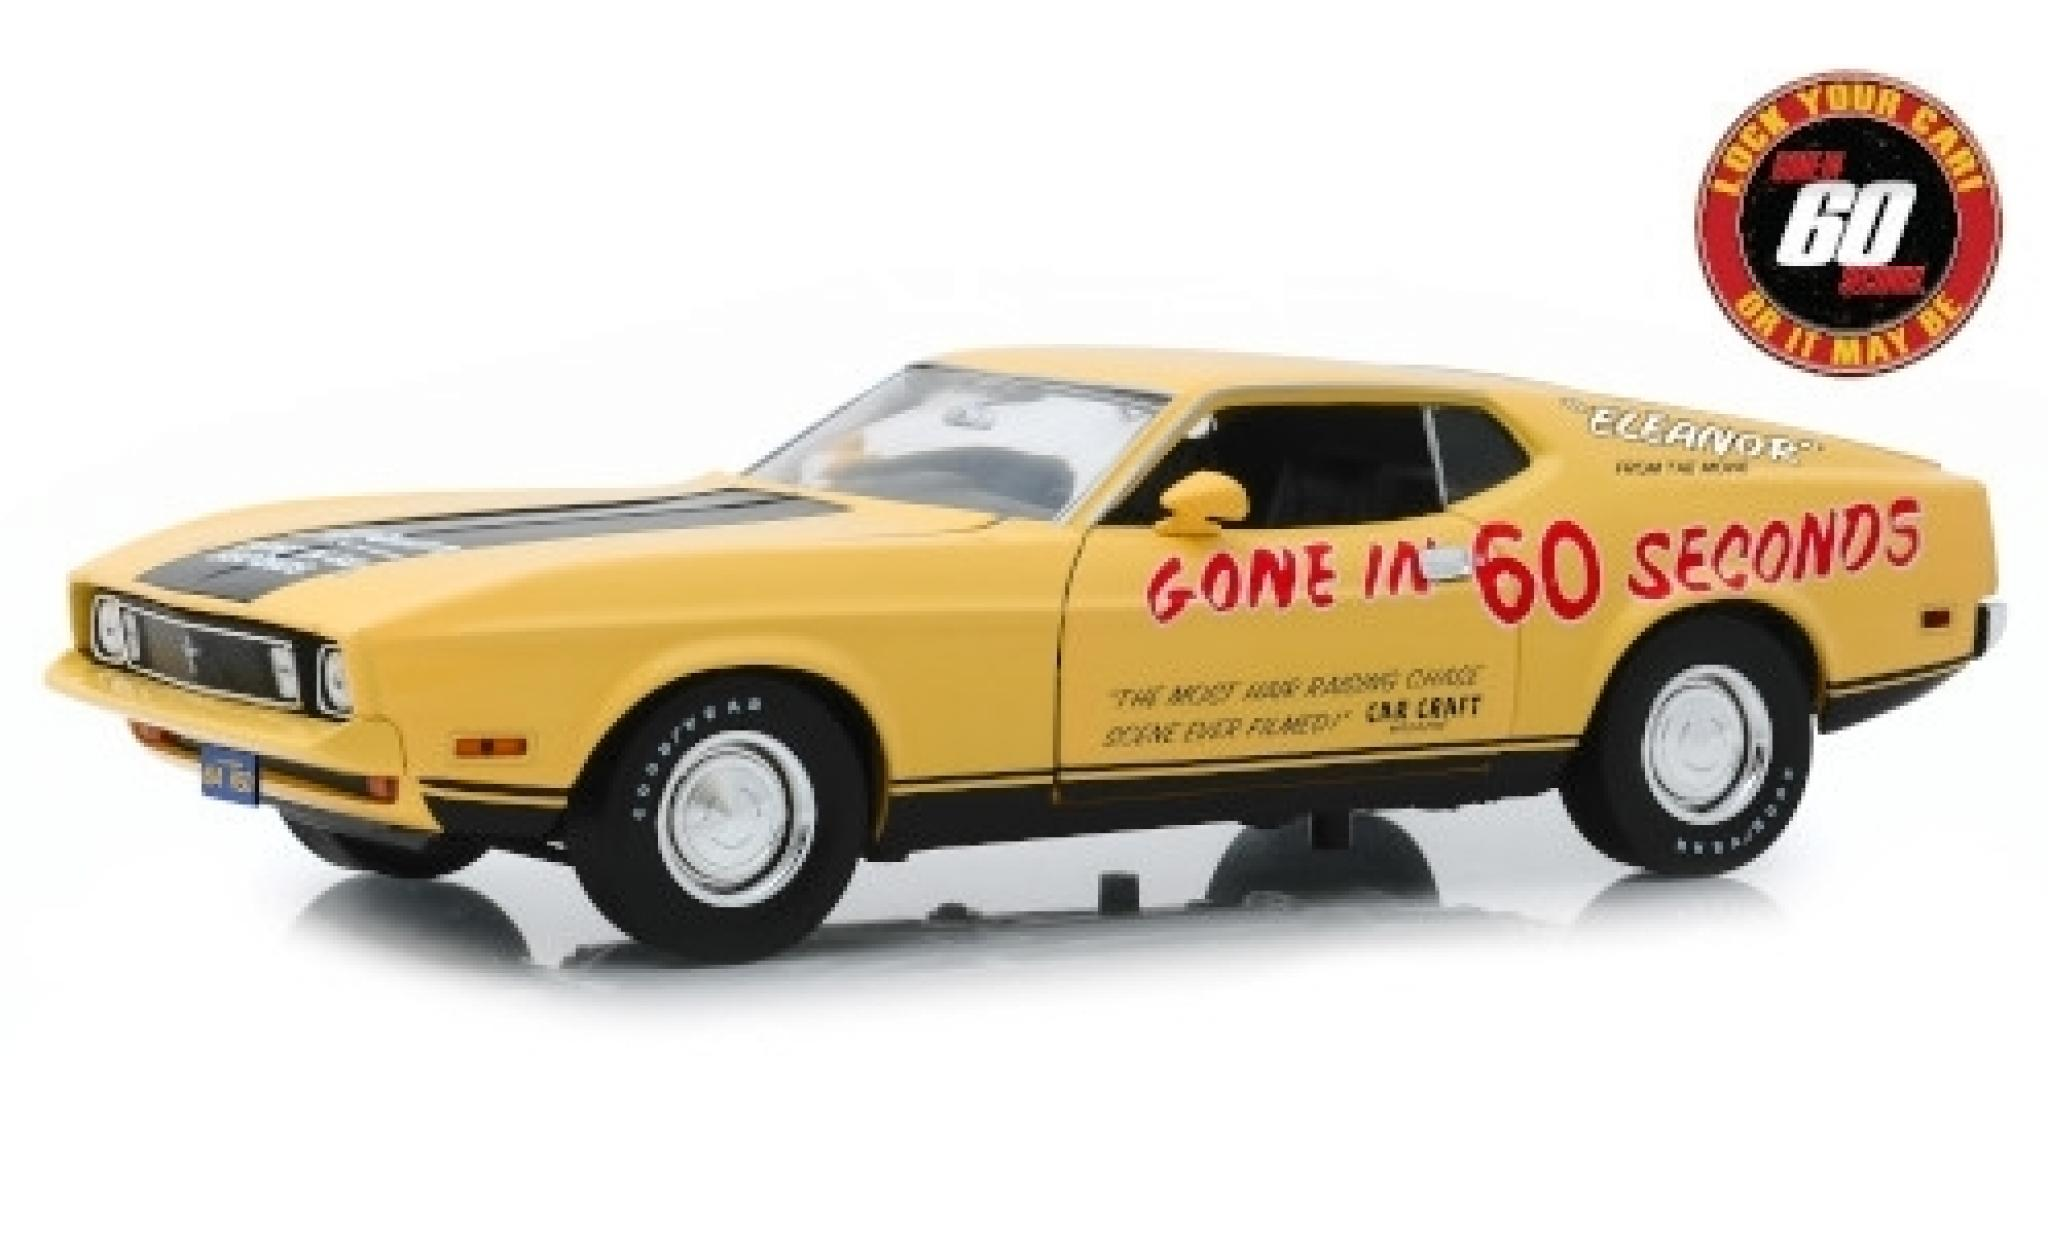 Ford Mustang 1/43 Greenlight Mach 1 Eleanor Gone in 60 Seconds 1973